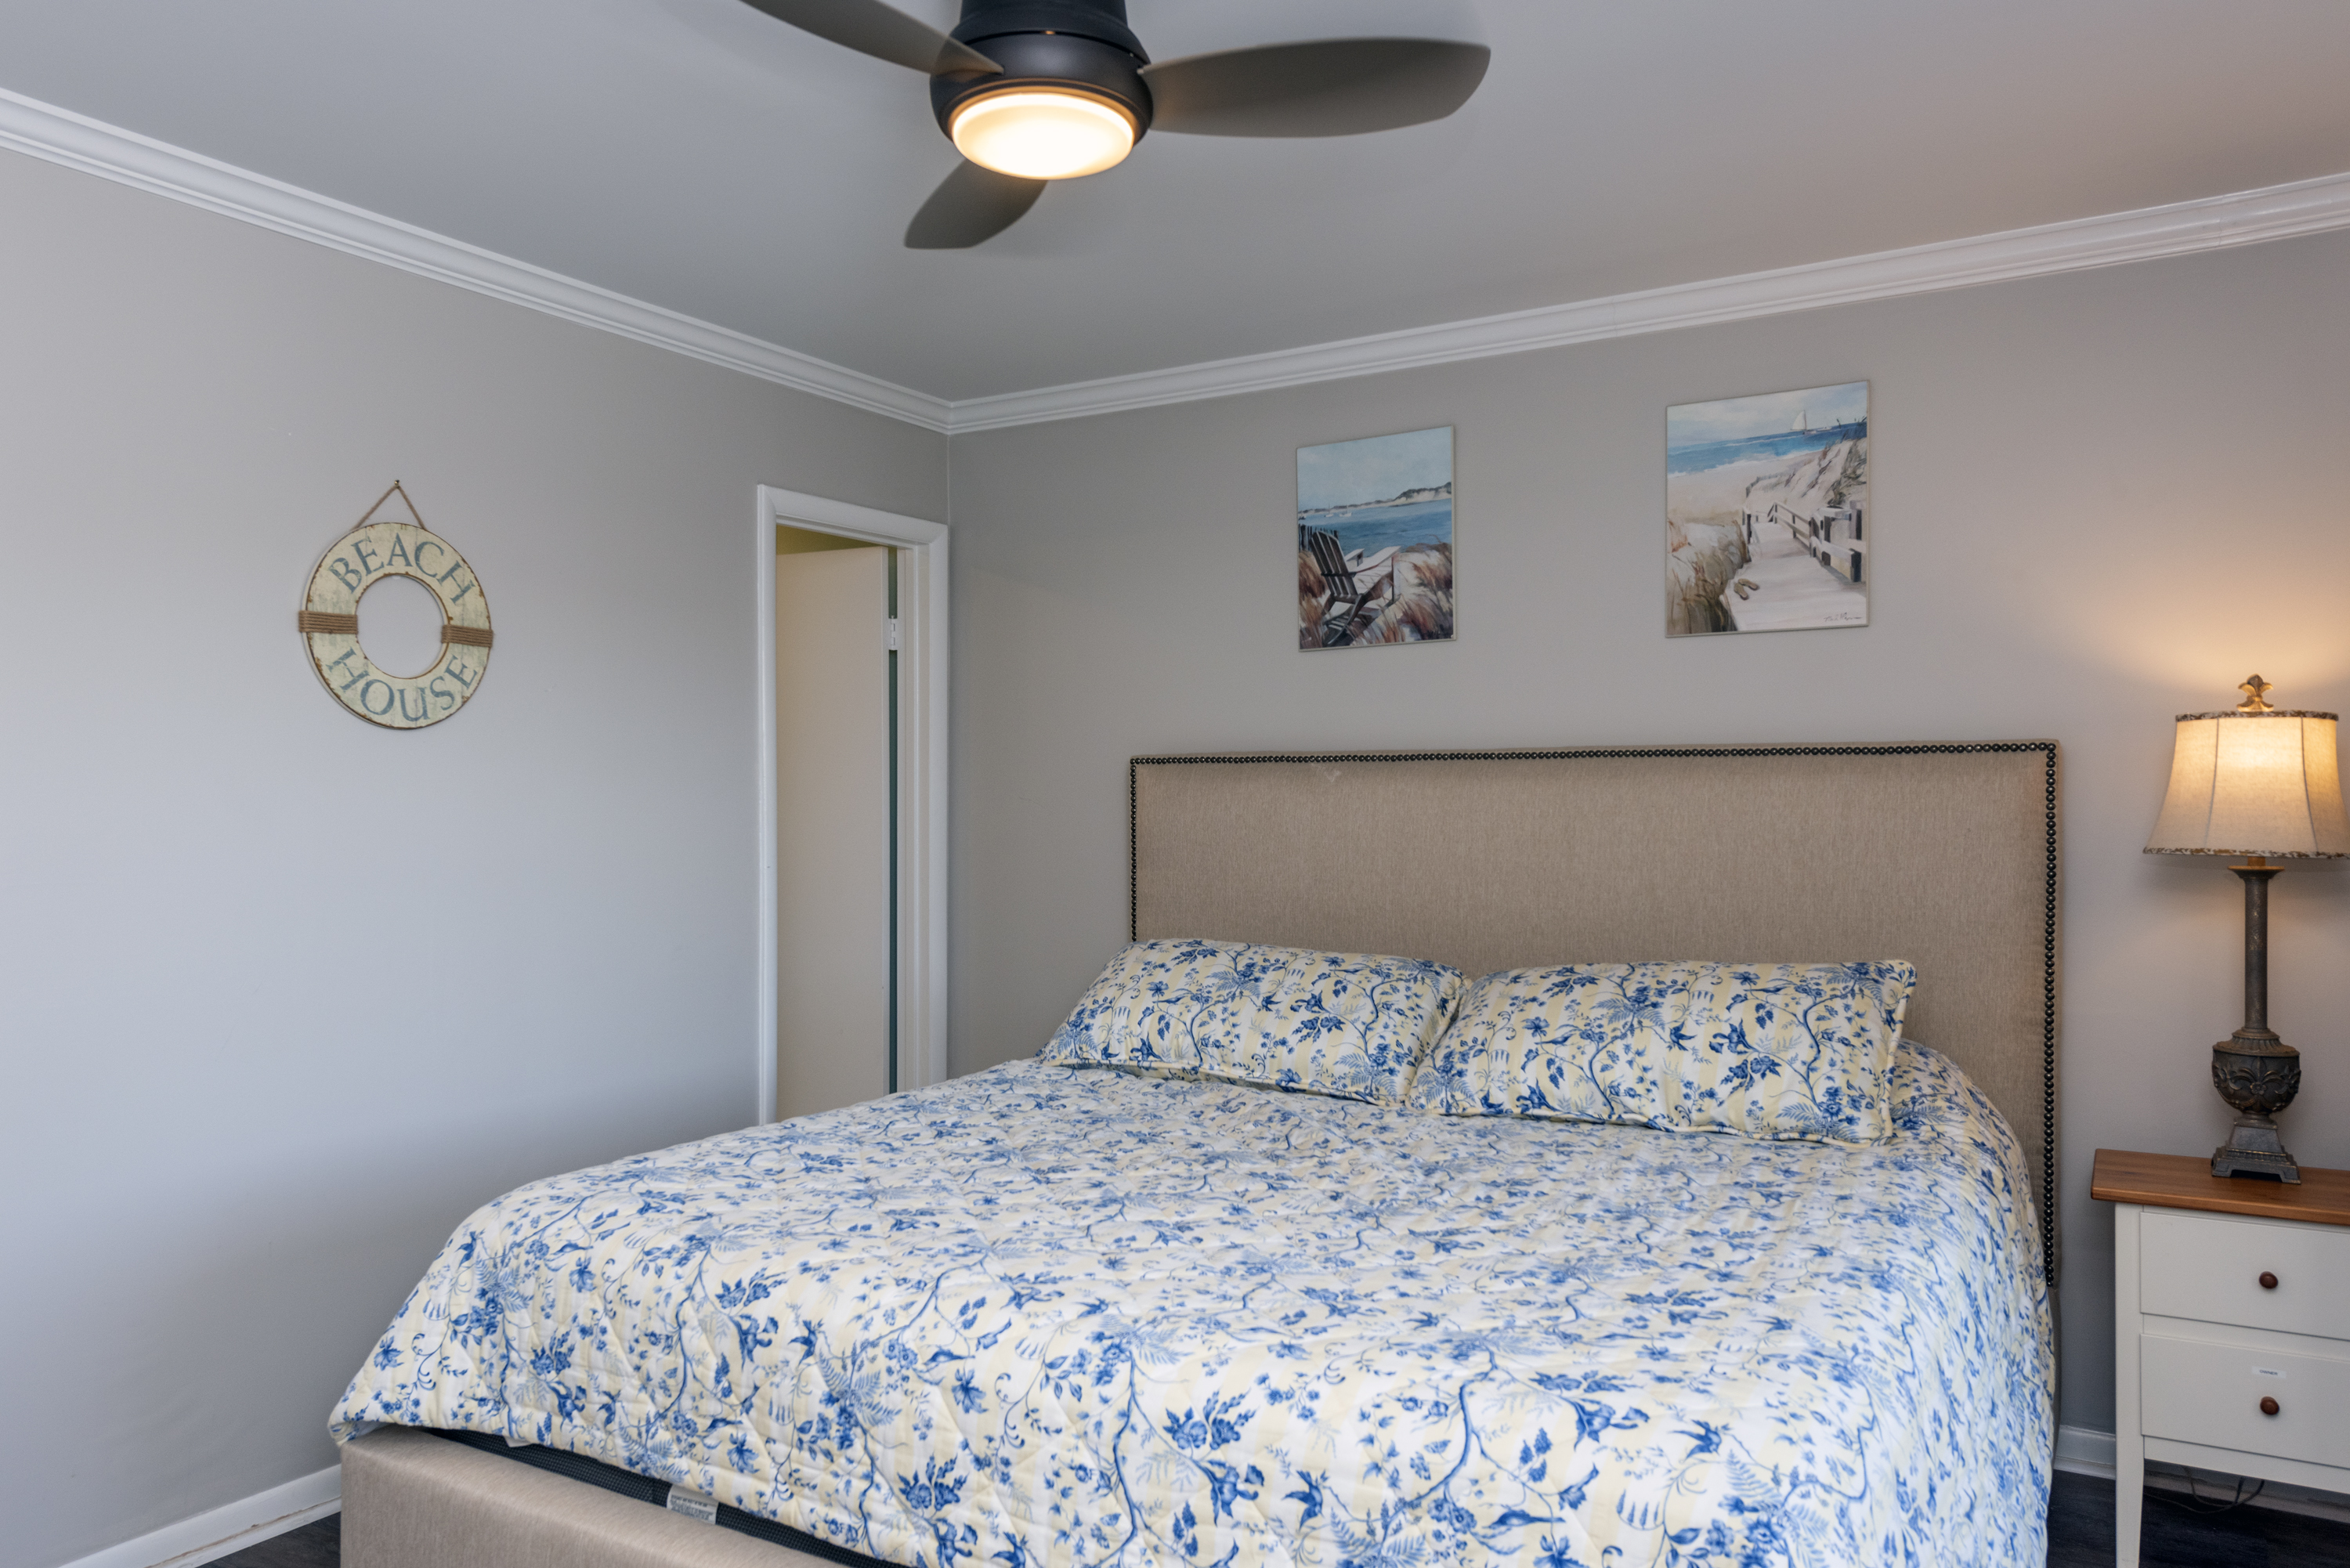 The master features a king size bed and en suite bathroom. Sliding glass doors lead to the screened in porch.